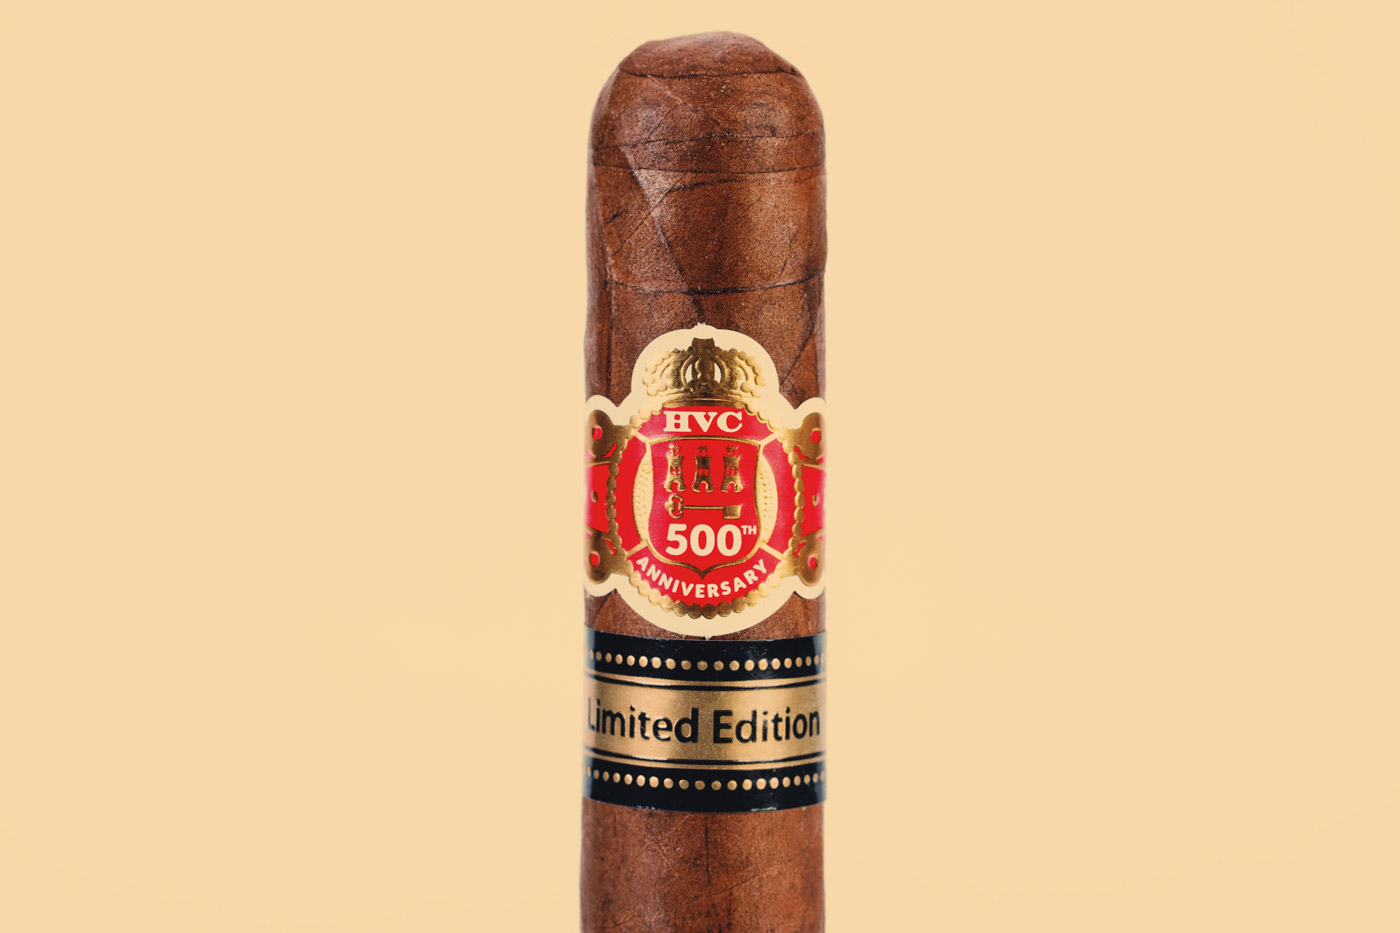 HVC 500 Years Anniversary cigar review